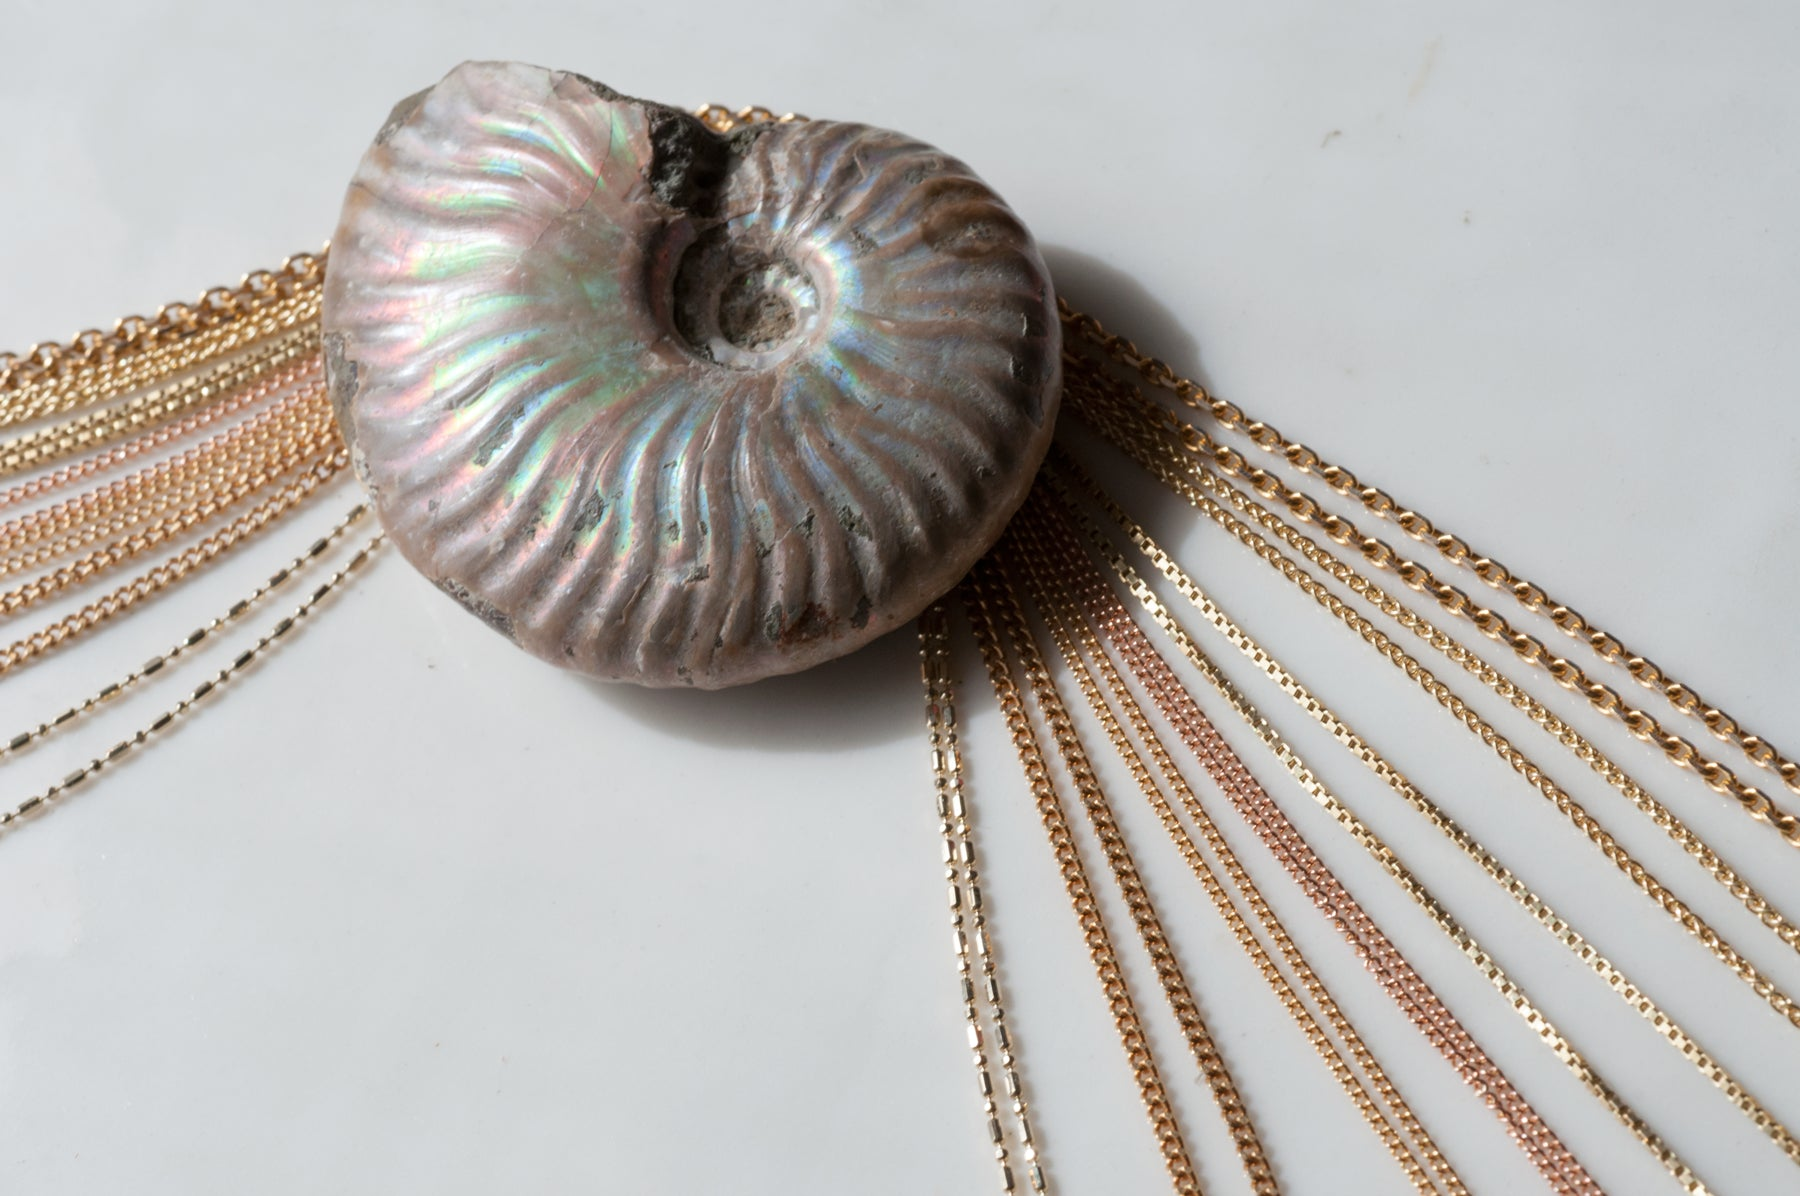 Marta Pia Chain Necklaces for Charms and Pendants a Collection with an Opalized Ammonite